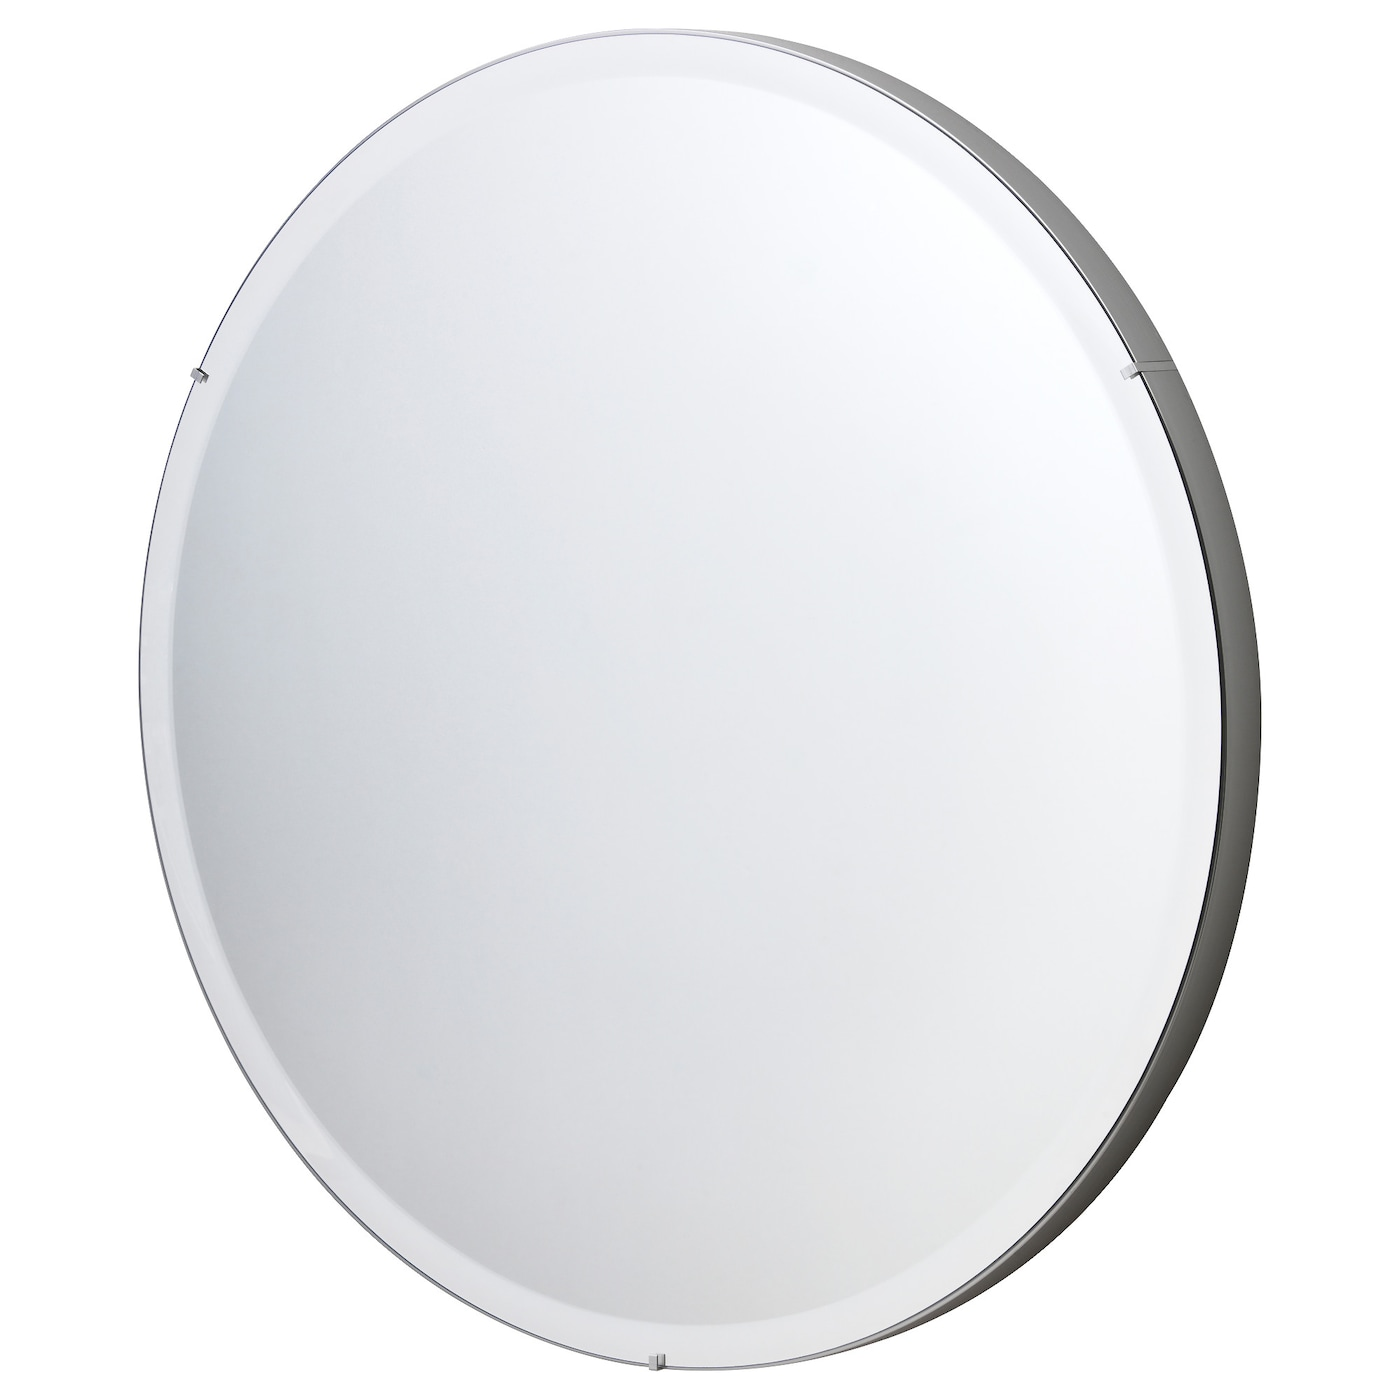 Wohnwand Zusammenstellen Ikea ~ IKEA RONGLAN mirror Provided with safety film  reduces damage if